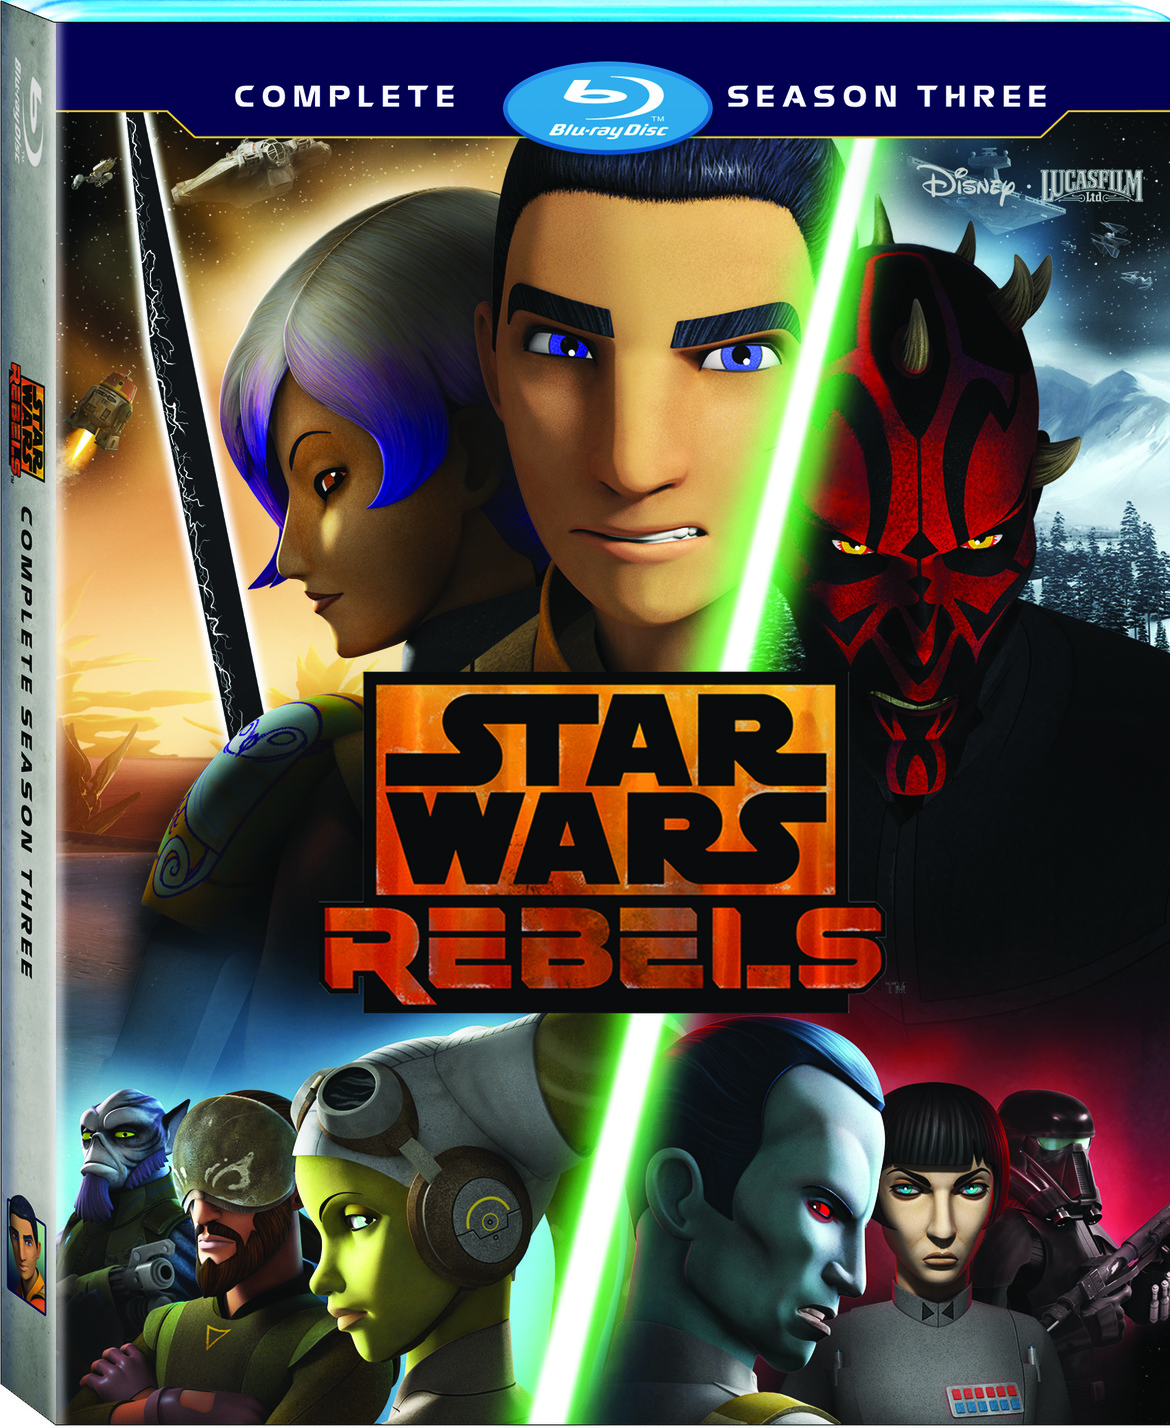 star wars rebels S3.jpg